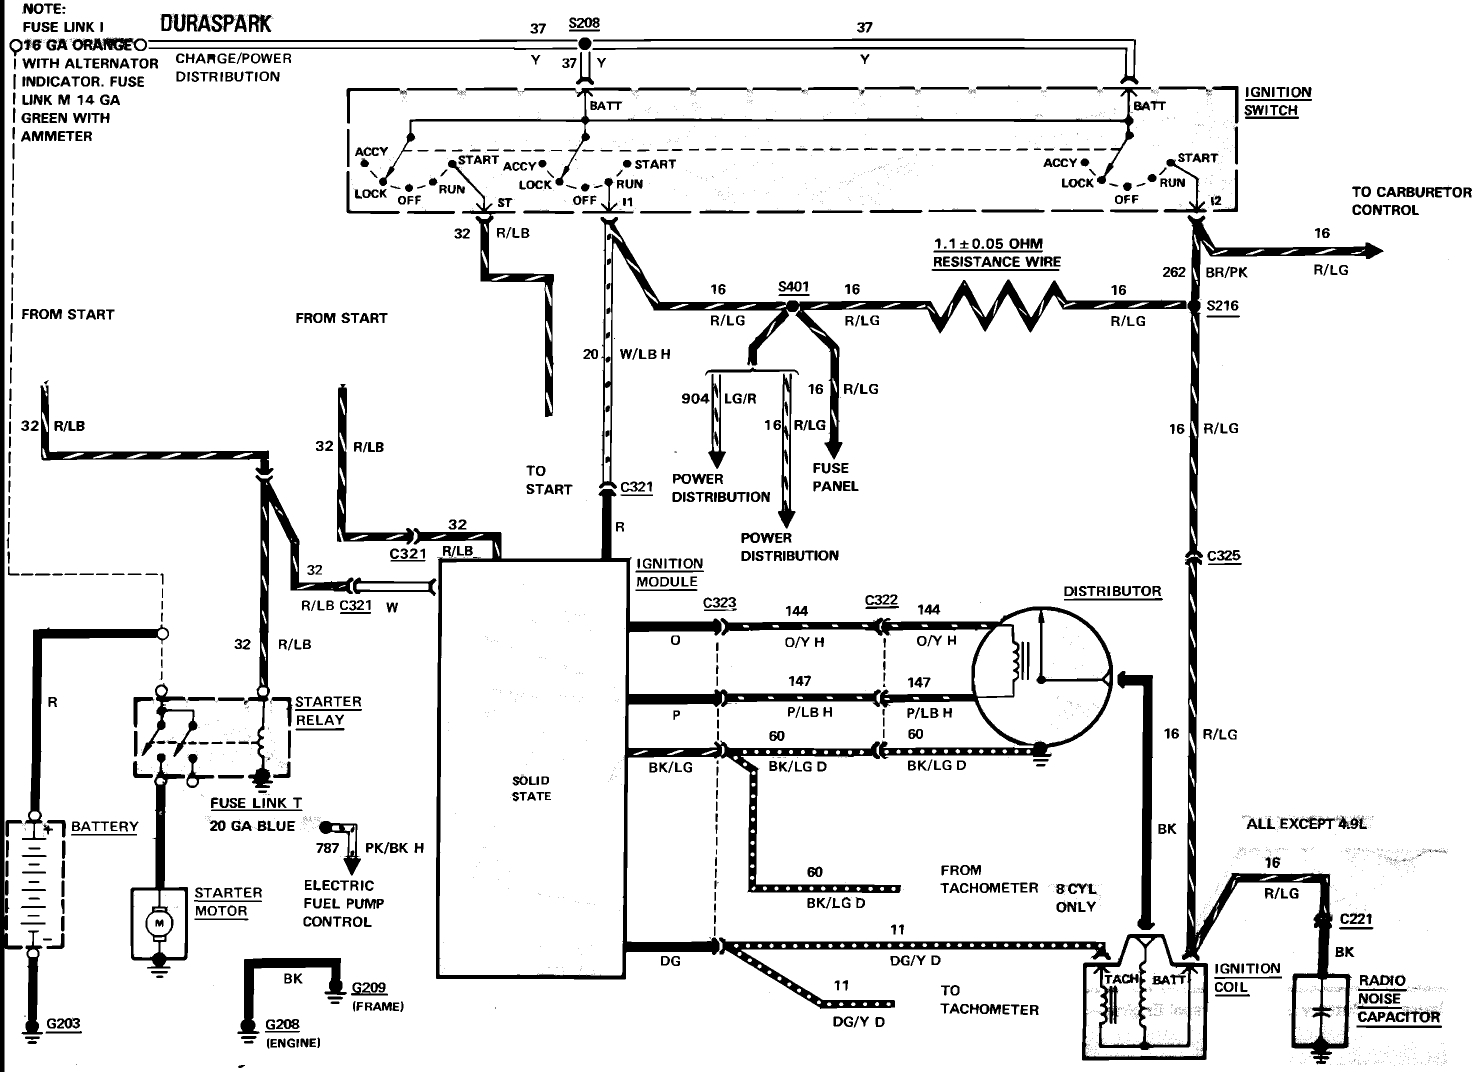 97 chevy ignition switch wiring diagram 1989 ford f150 ignition wiring diagram | free wiring diagram 1969 chevy ignition switch wiring diagram